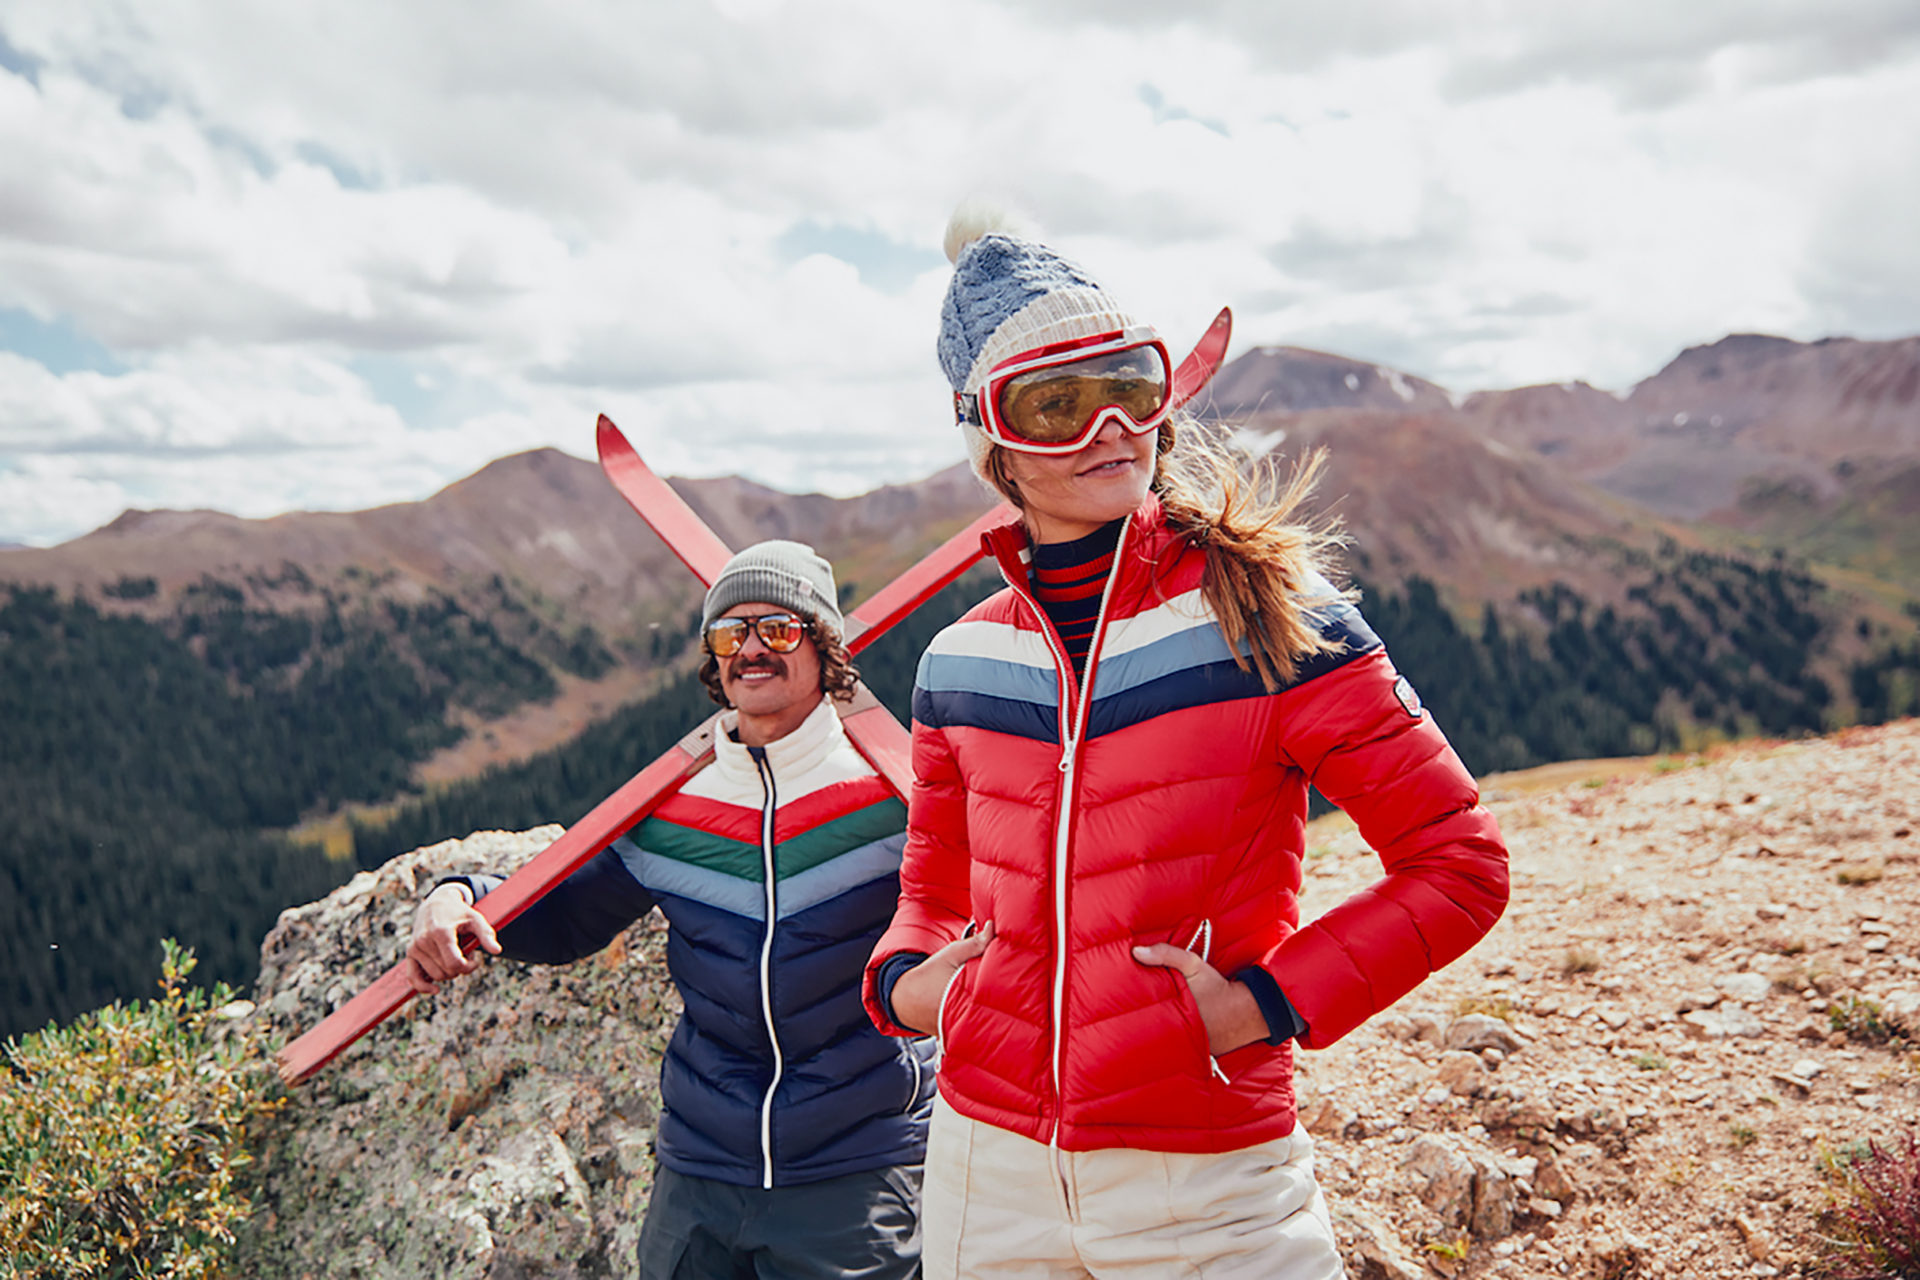 Marine Layer 70s Men's and Women's Outerwear